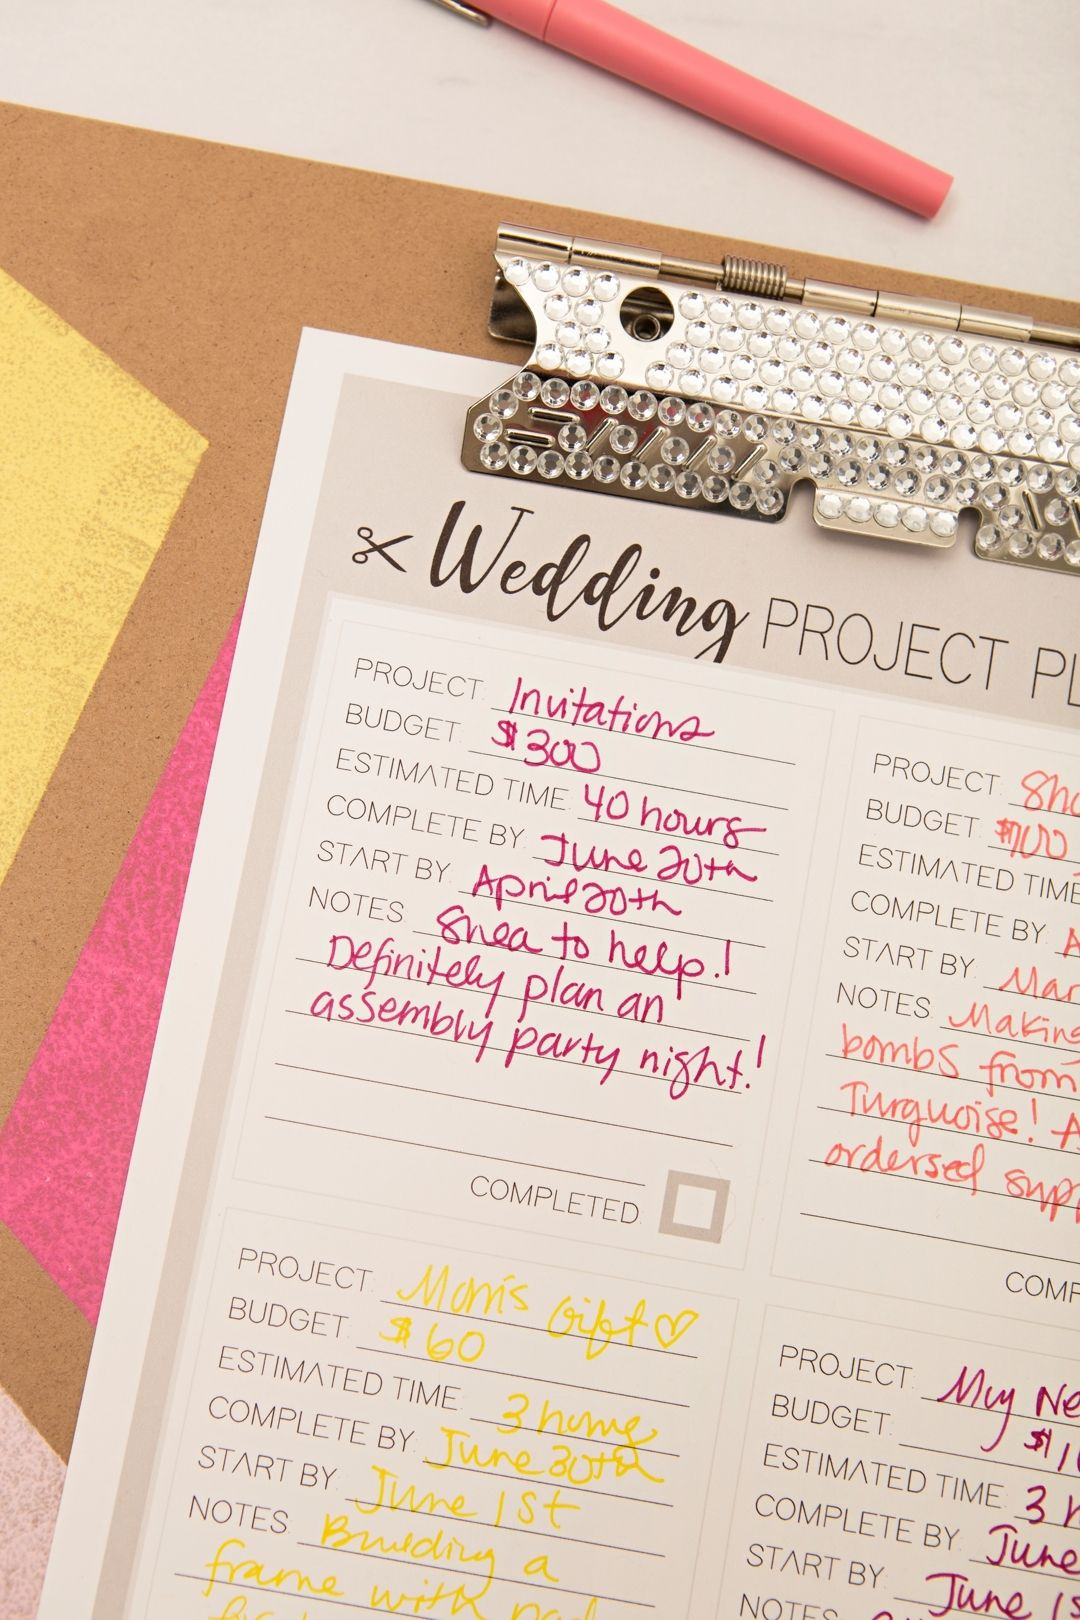 Print Out Out This Diy Wedding Project Planner Sheet For